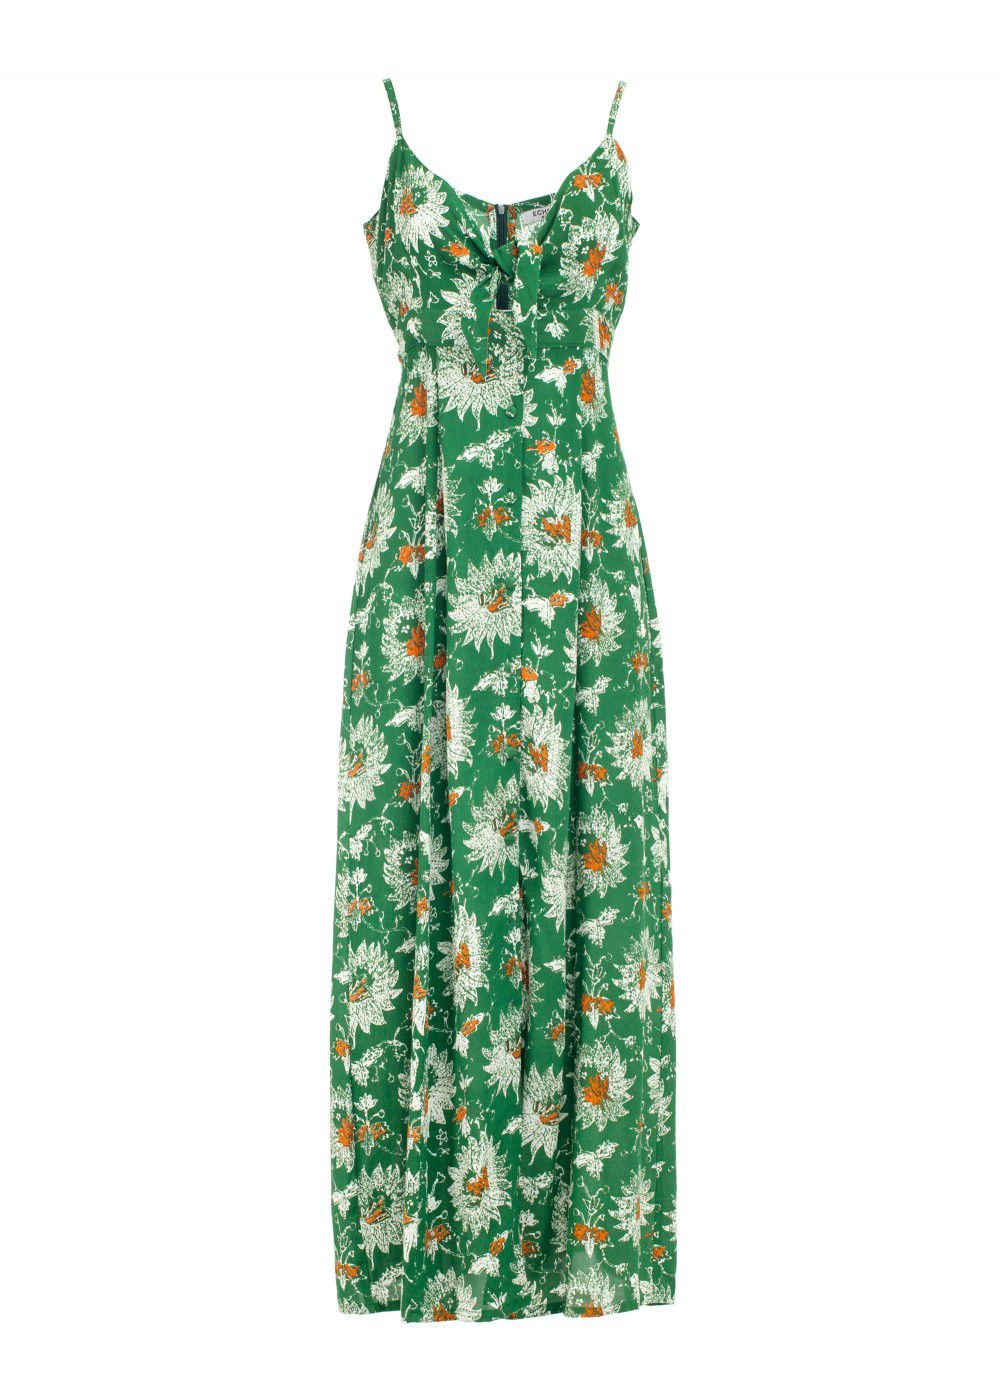 Echo 77 Bali Green Dress